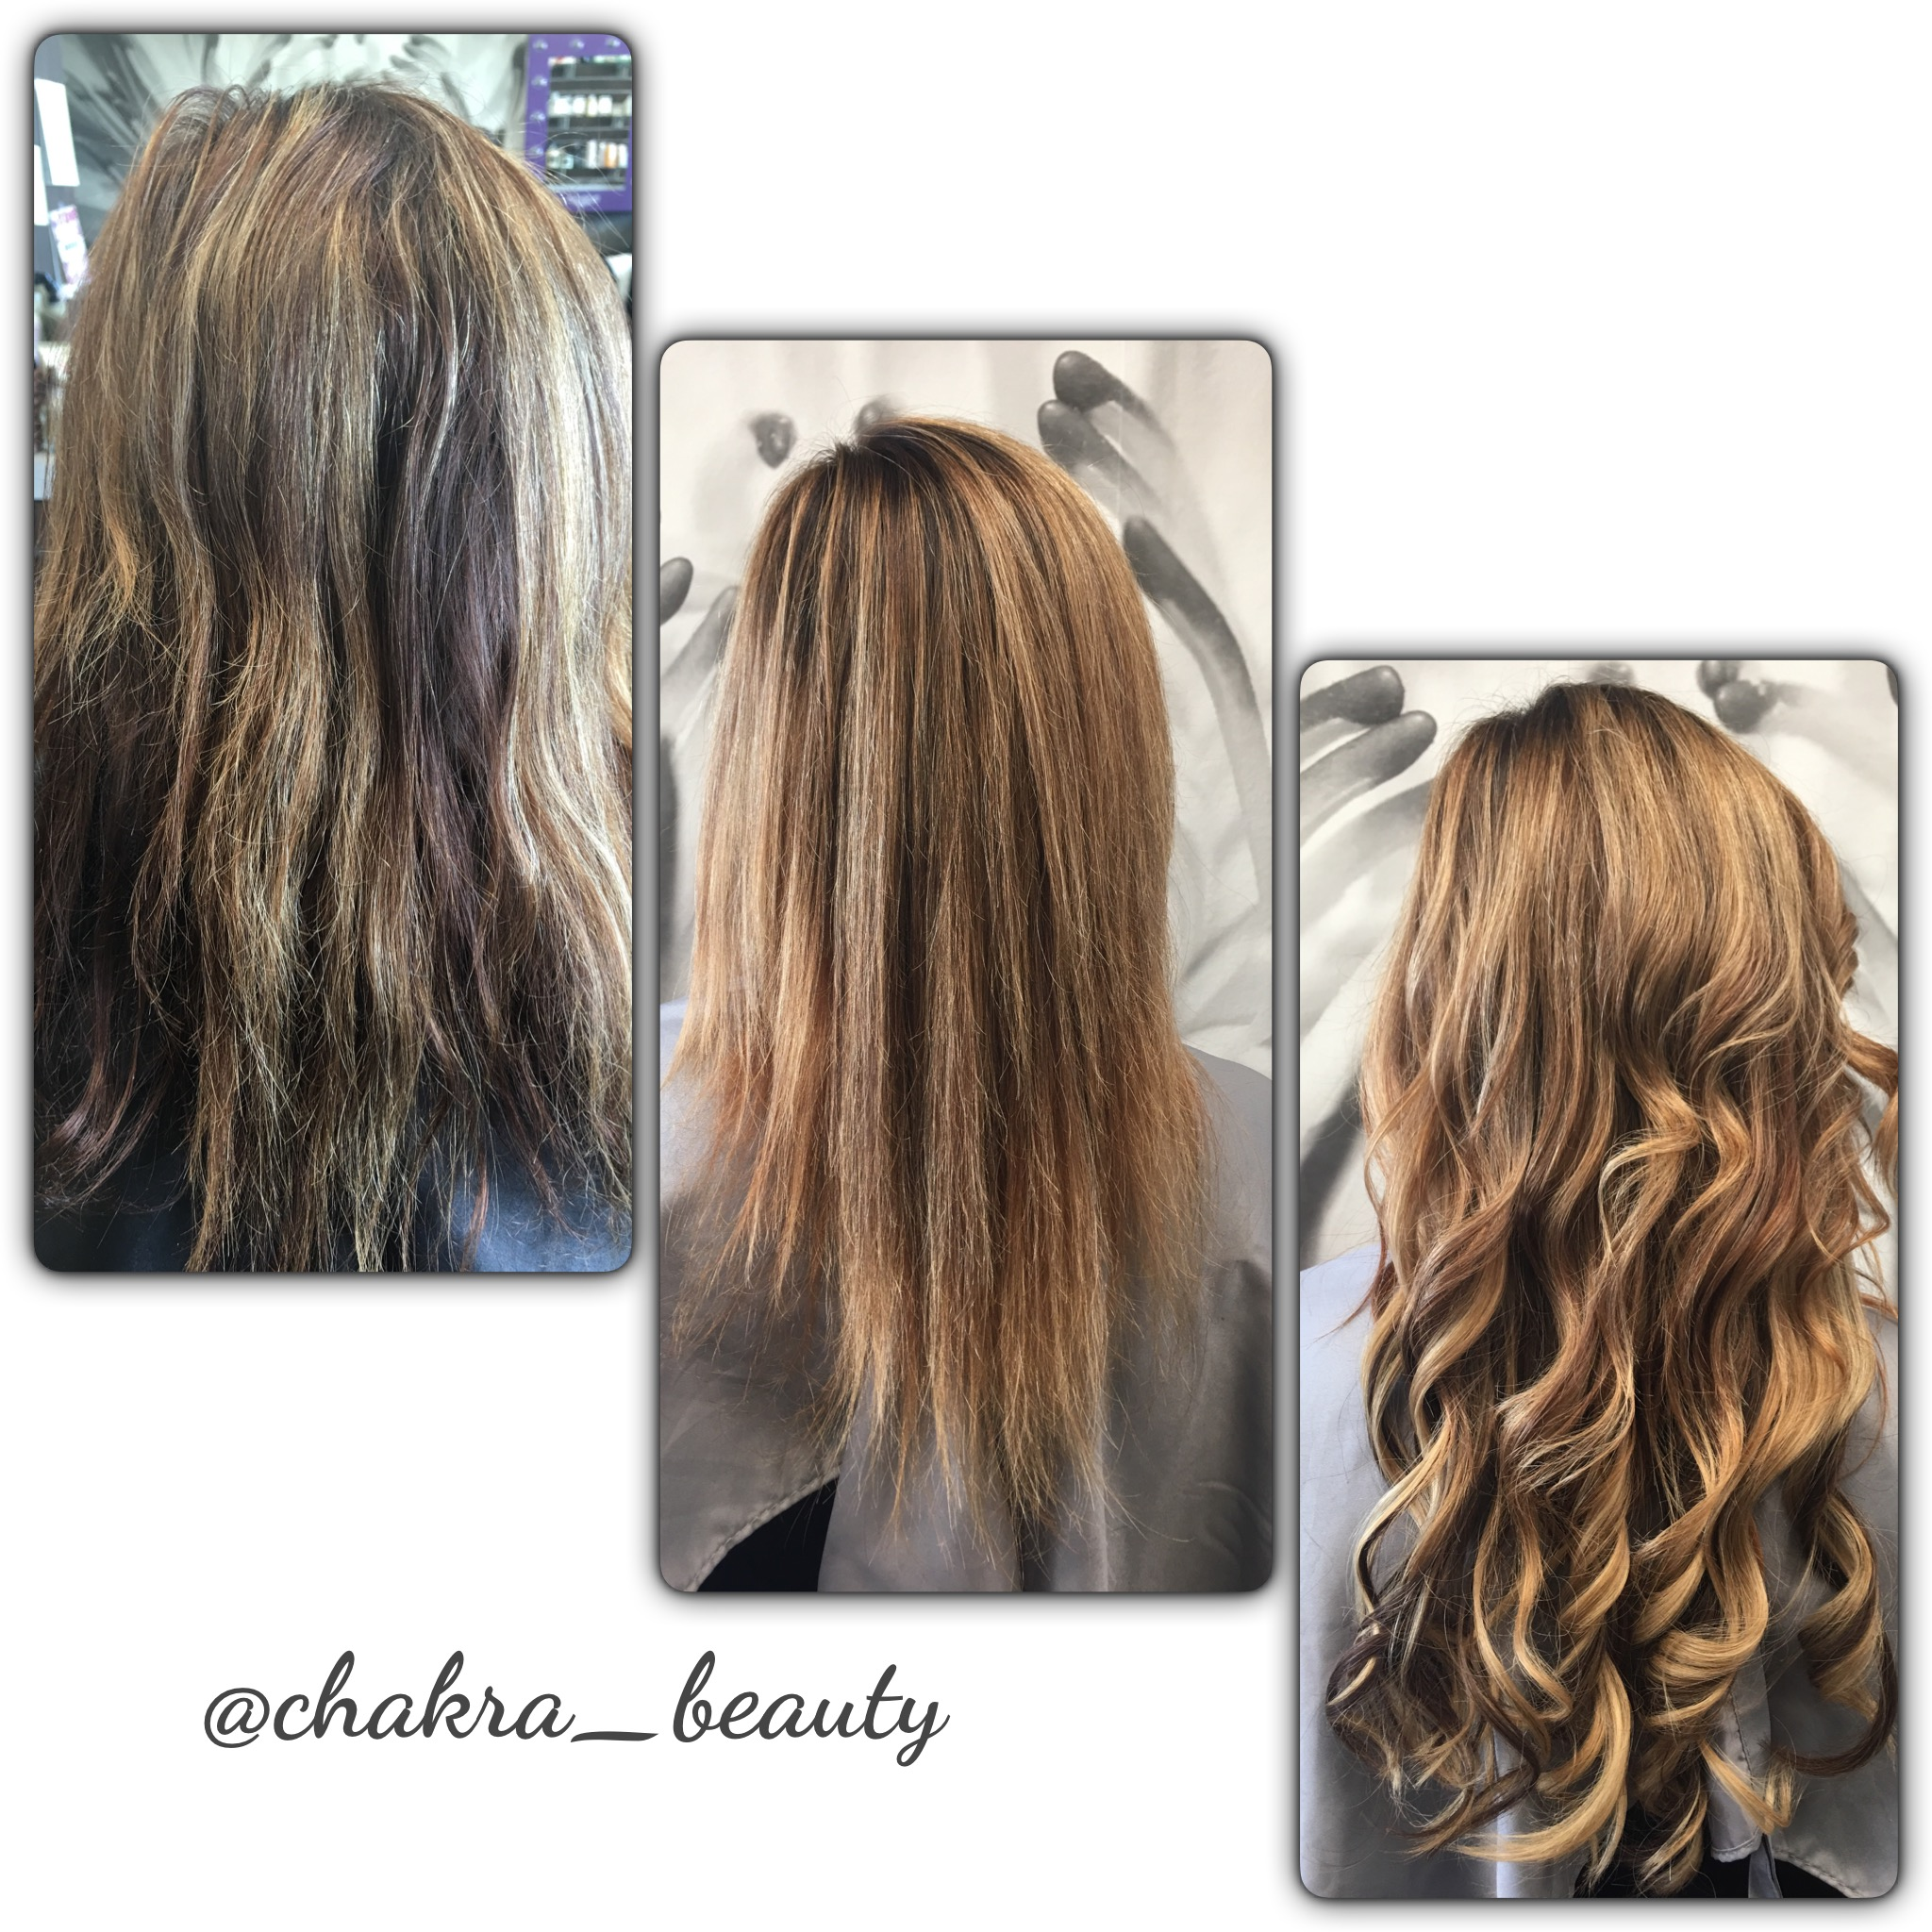 Best Hair Extensions Salons Hairdreams Chakra Beauty